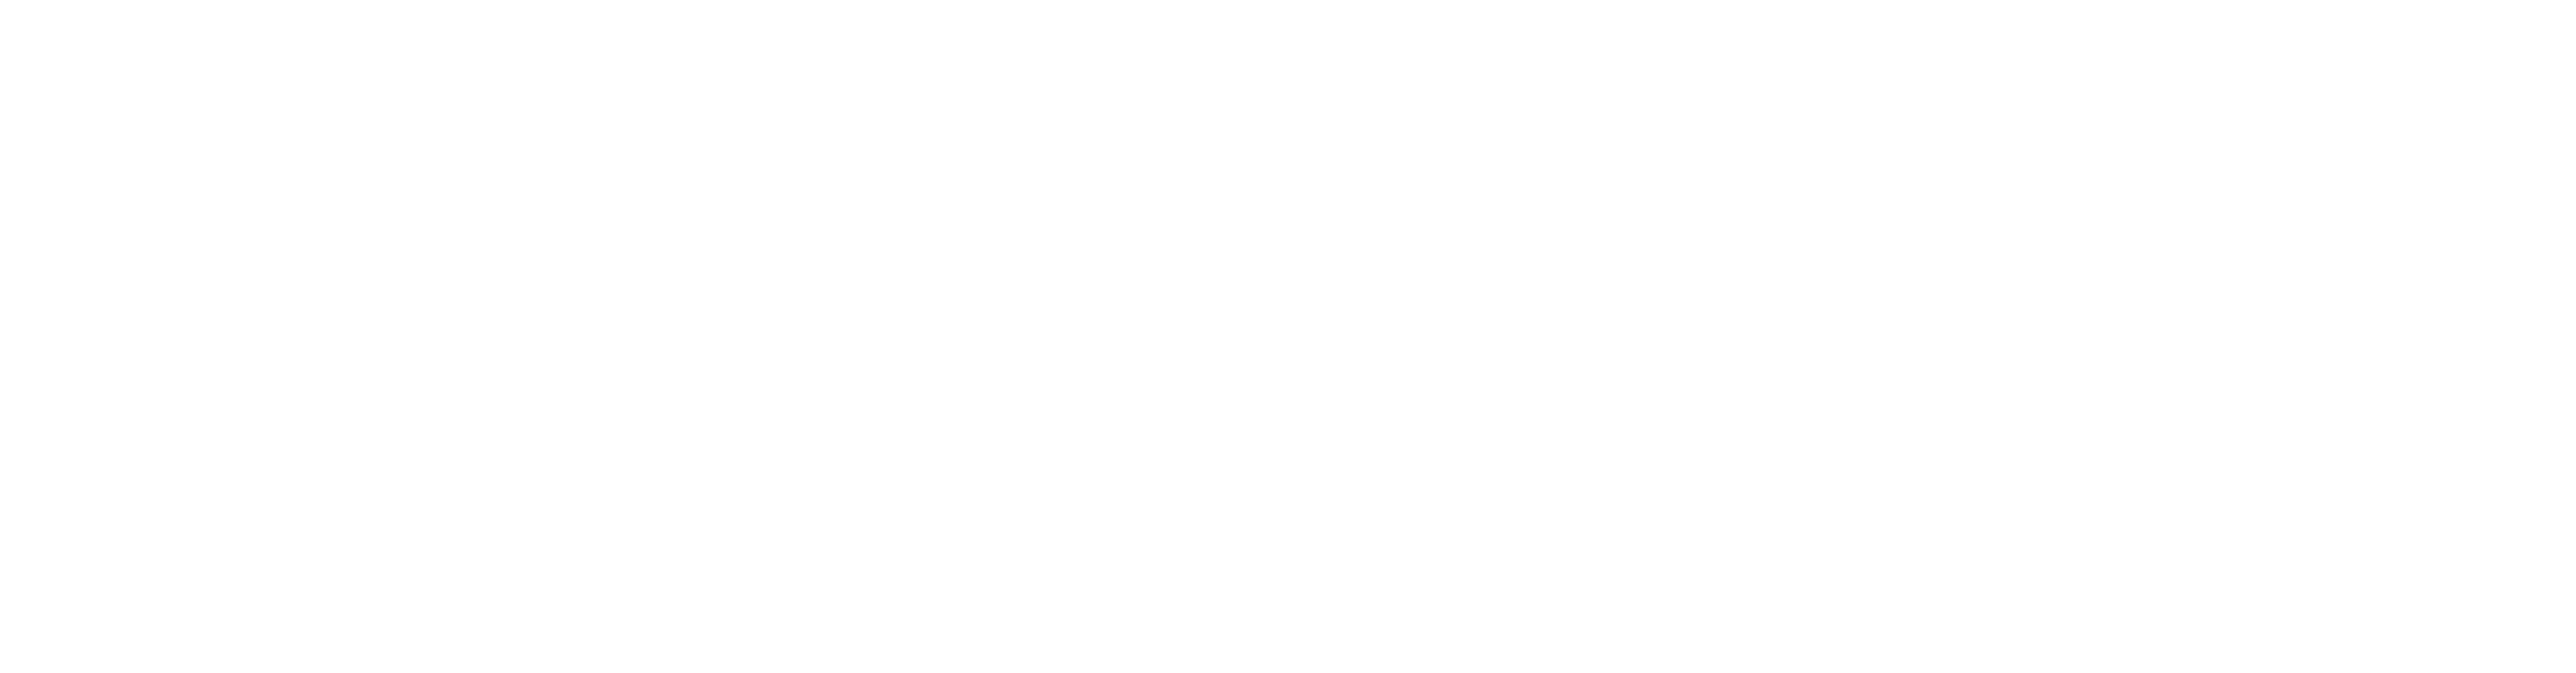 Policies | University Human Resources - The University of Iowa